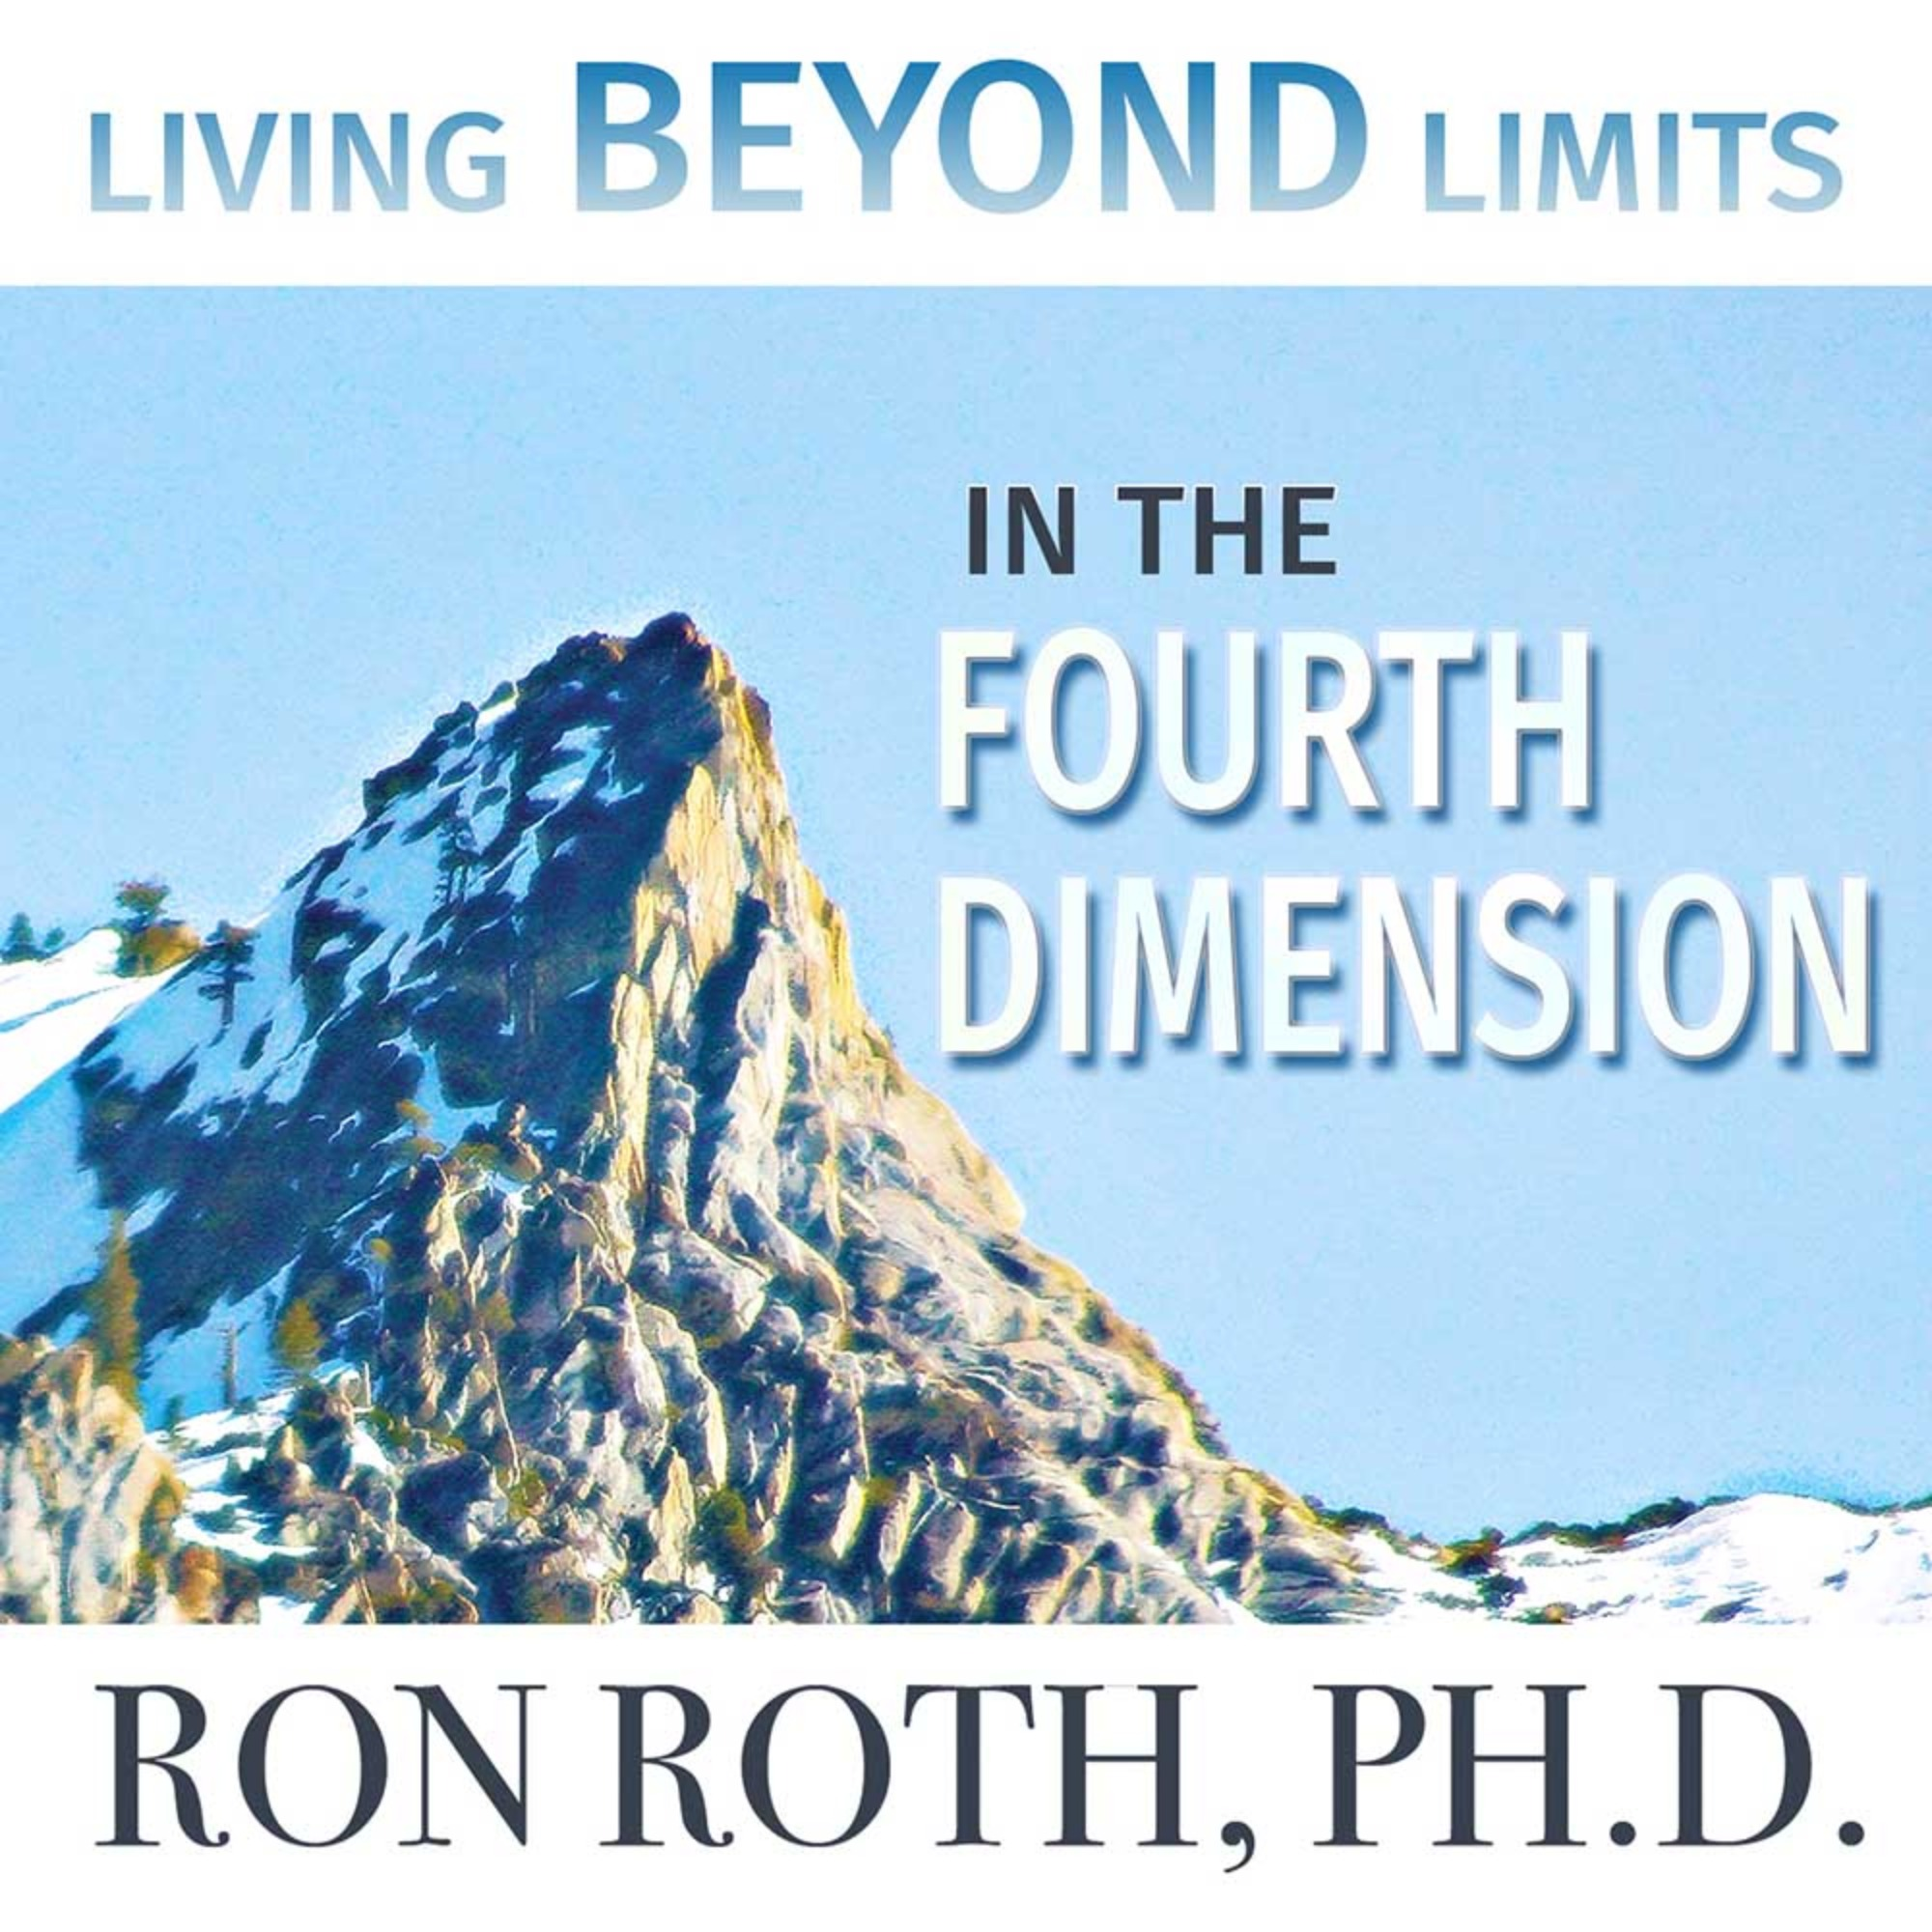 Living Beyond Limits in the Fourth Dimension